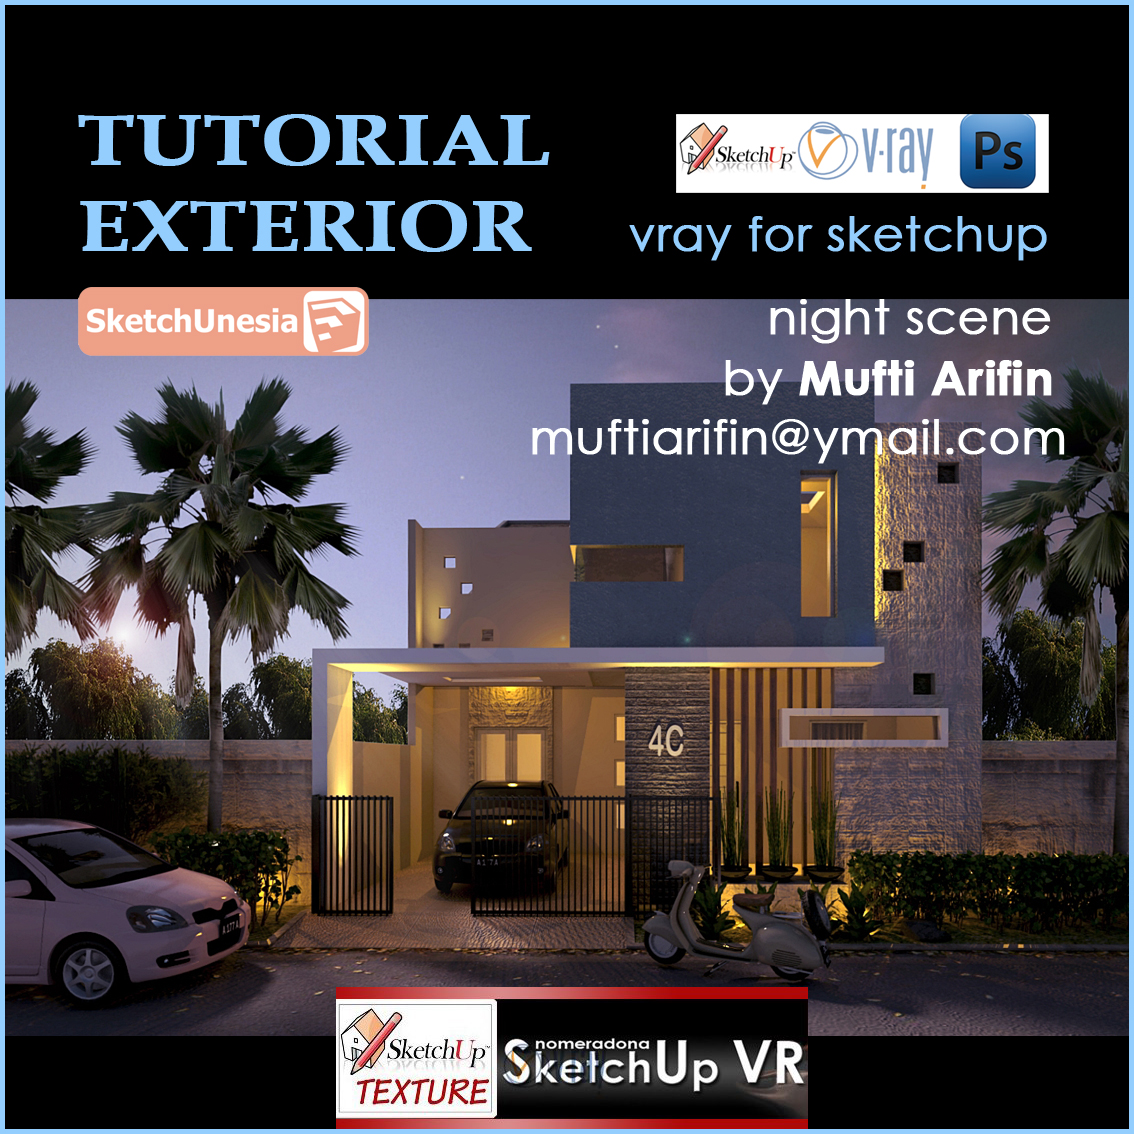 sketchup texture vray tutorial exterior rh sketchuptexture com Google SketchUp House Google SketchUp House